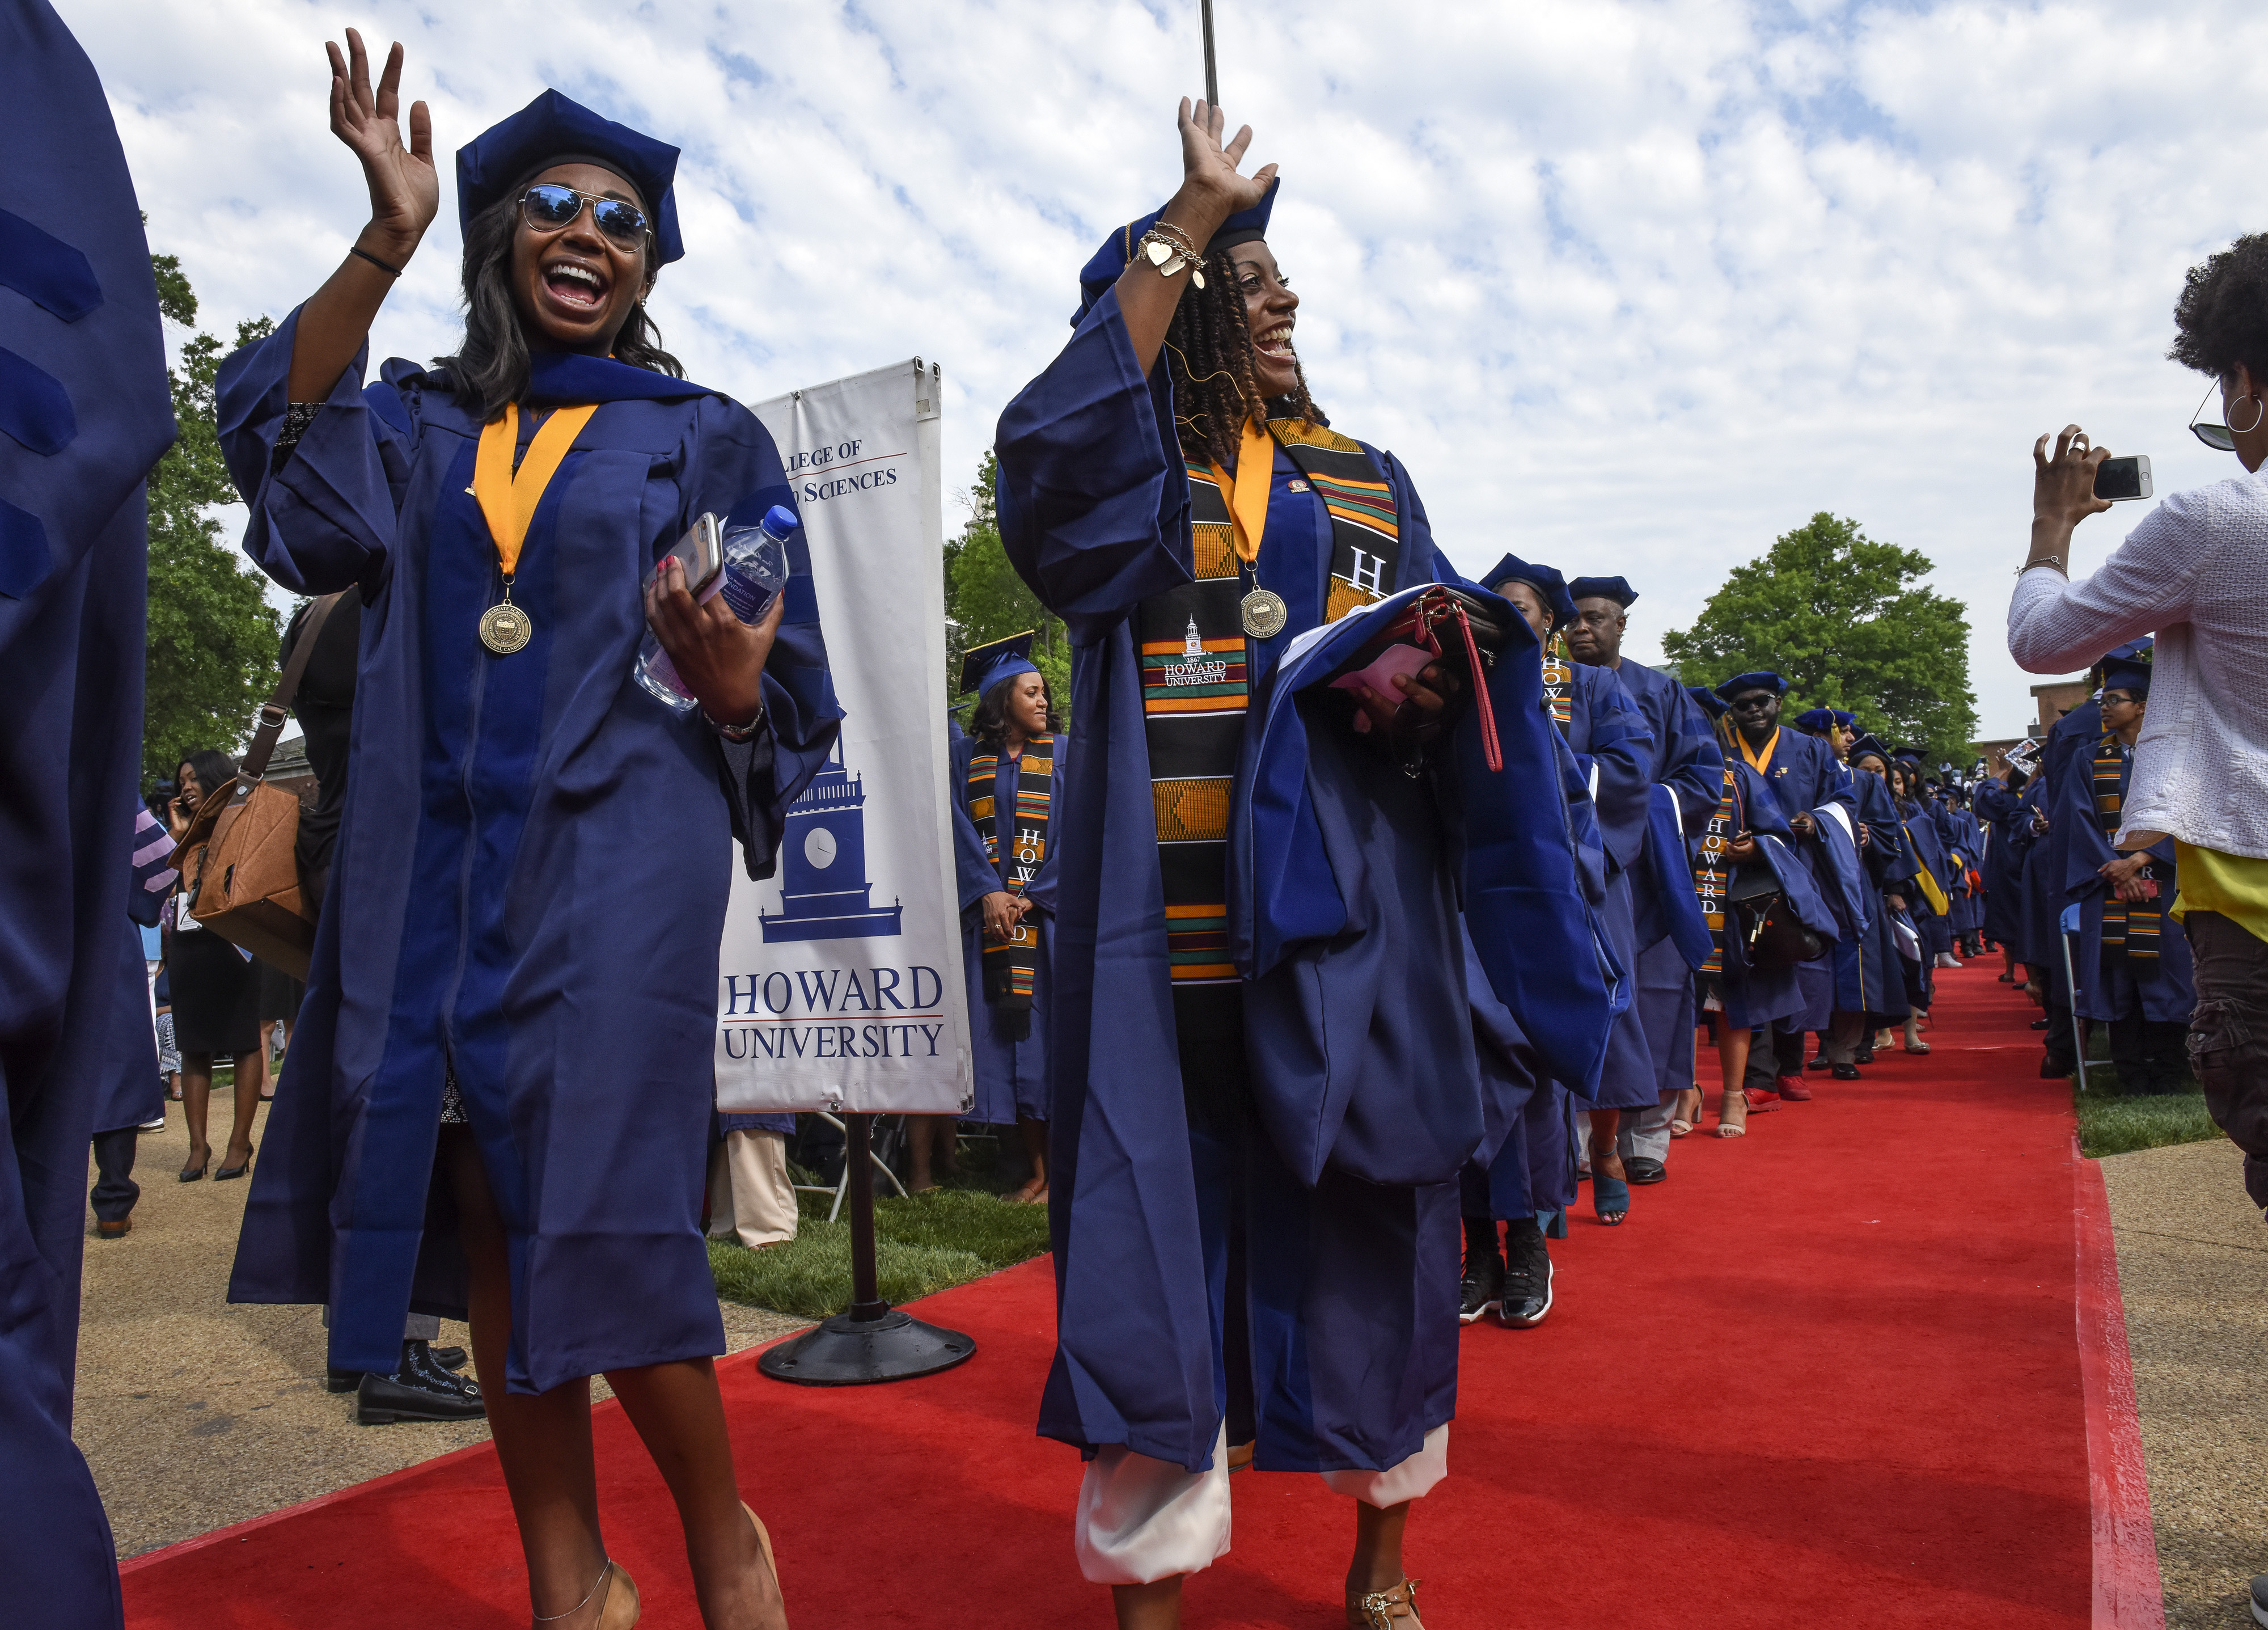 Medical students at Howard University wave as they parade in during commencement ceremonies